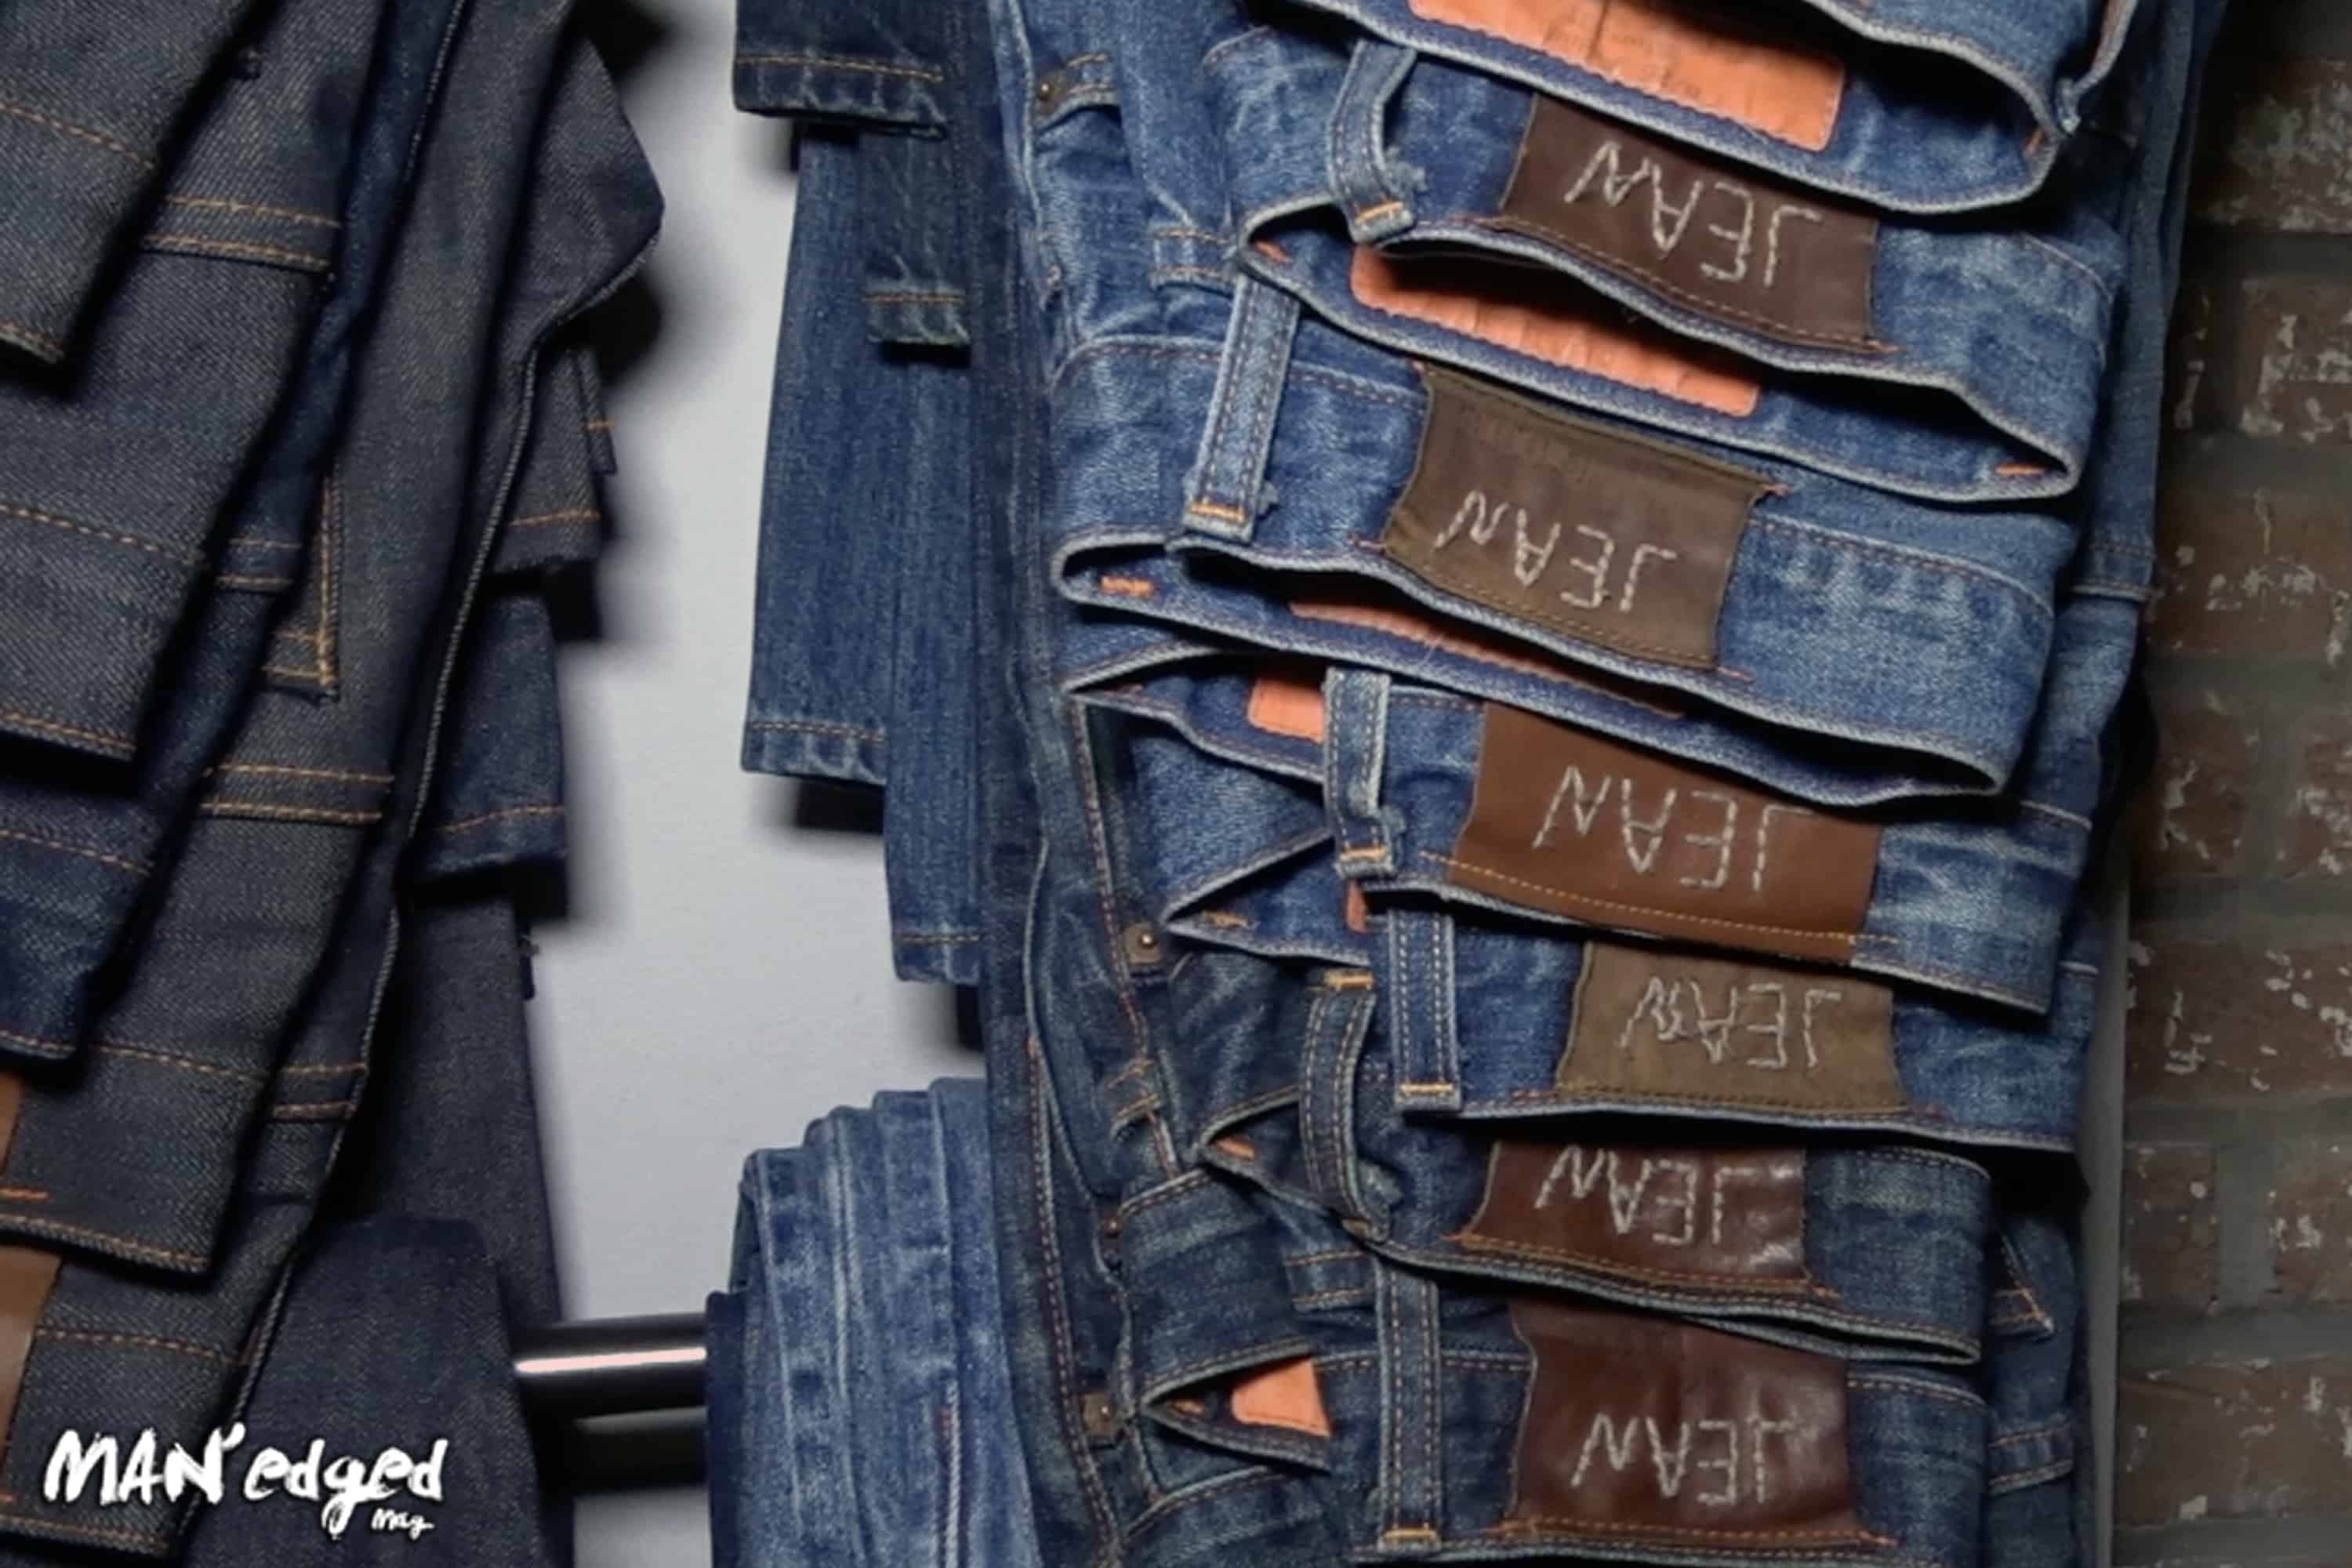 Men's Denim pants hanging on wall